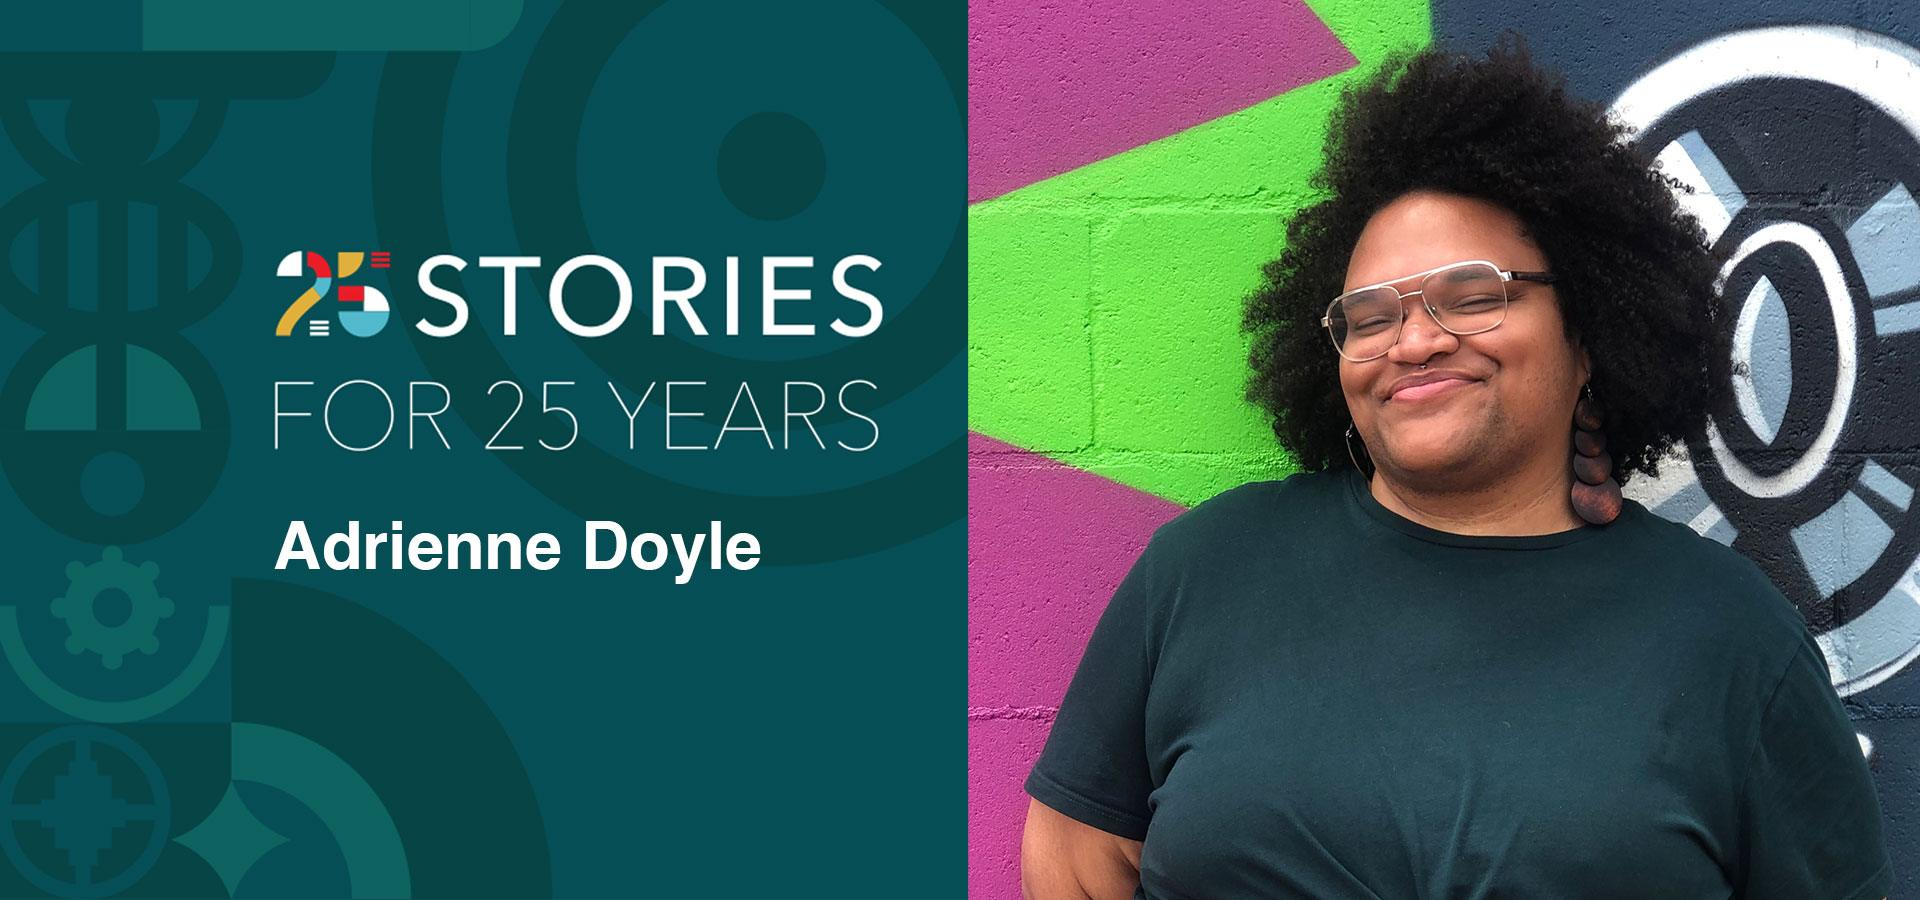 Portrait of a person with the words 25 stories for 25 years - Adrienne Doyle